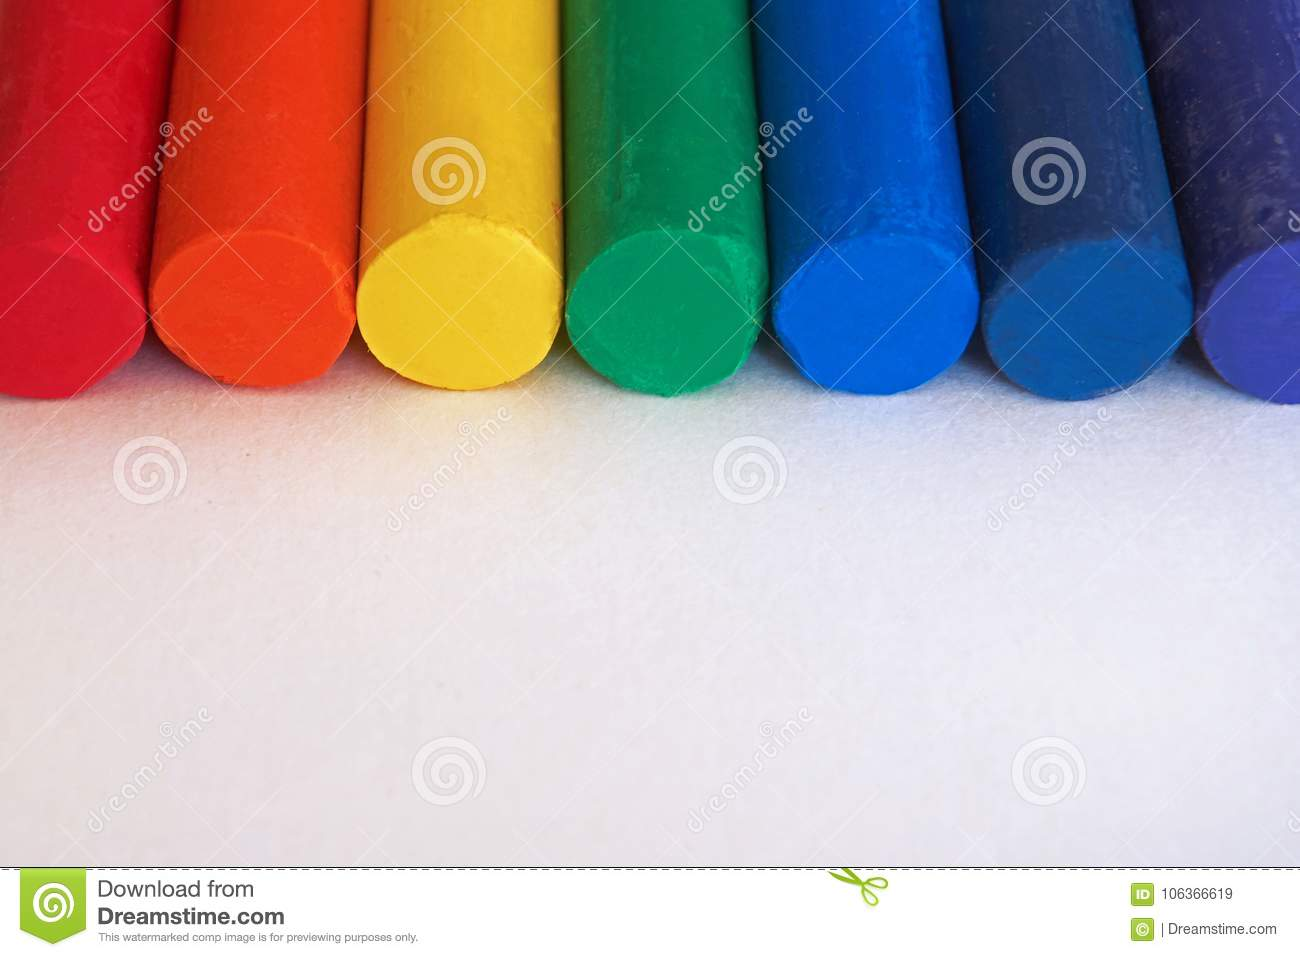 Red, orange, yellow, green, blue, indigo, purple. Rainbow colored crayons are placed side by side.